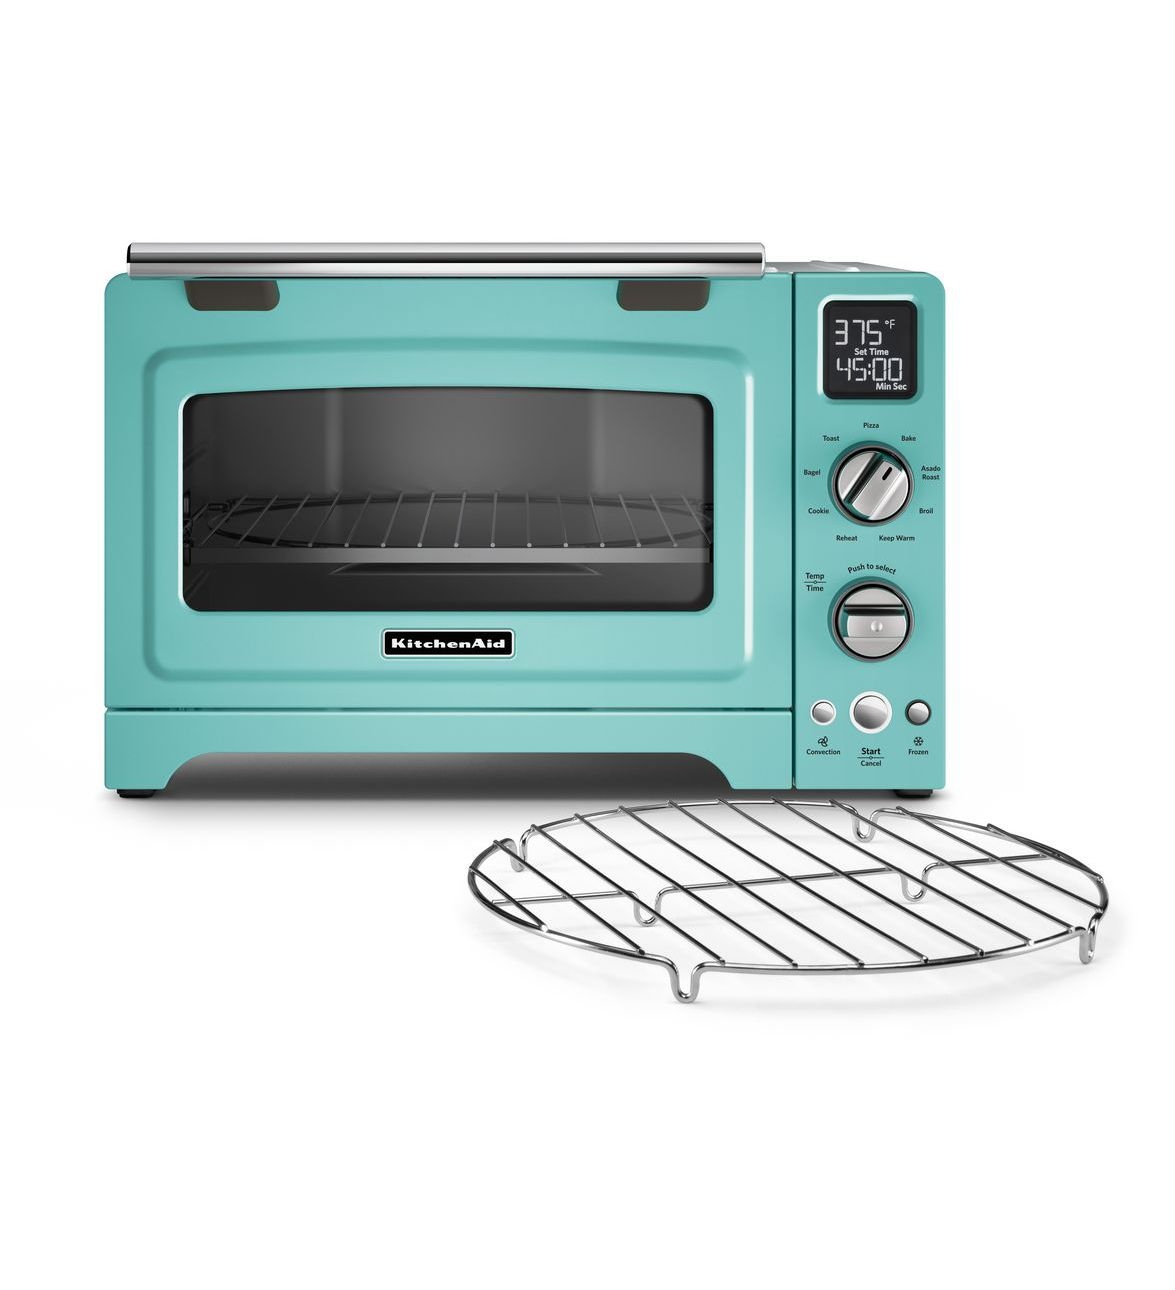 Countertop Convection Oven Kitchenaid : KitchenAid? 12? Convection Digital Countertop Oven The ...